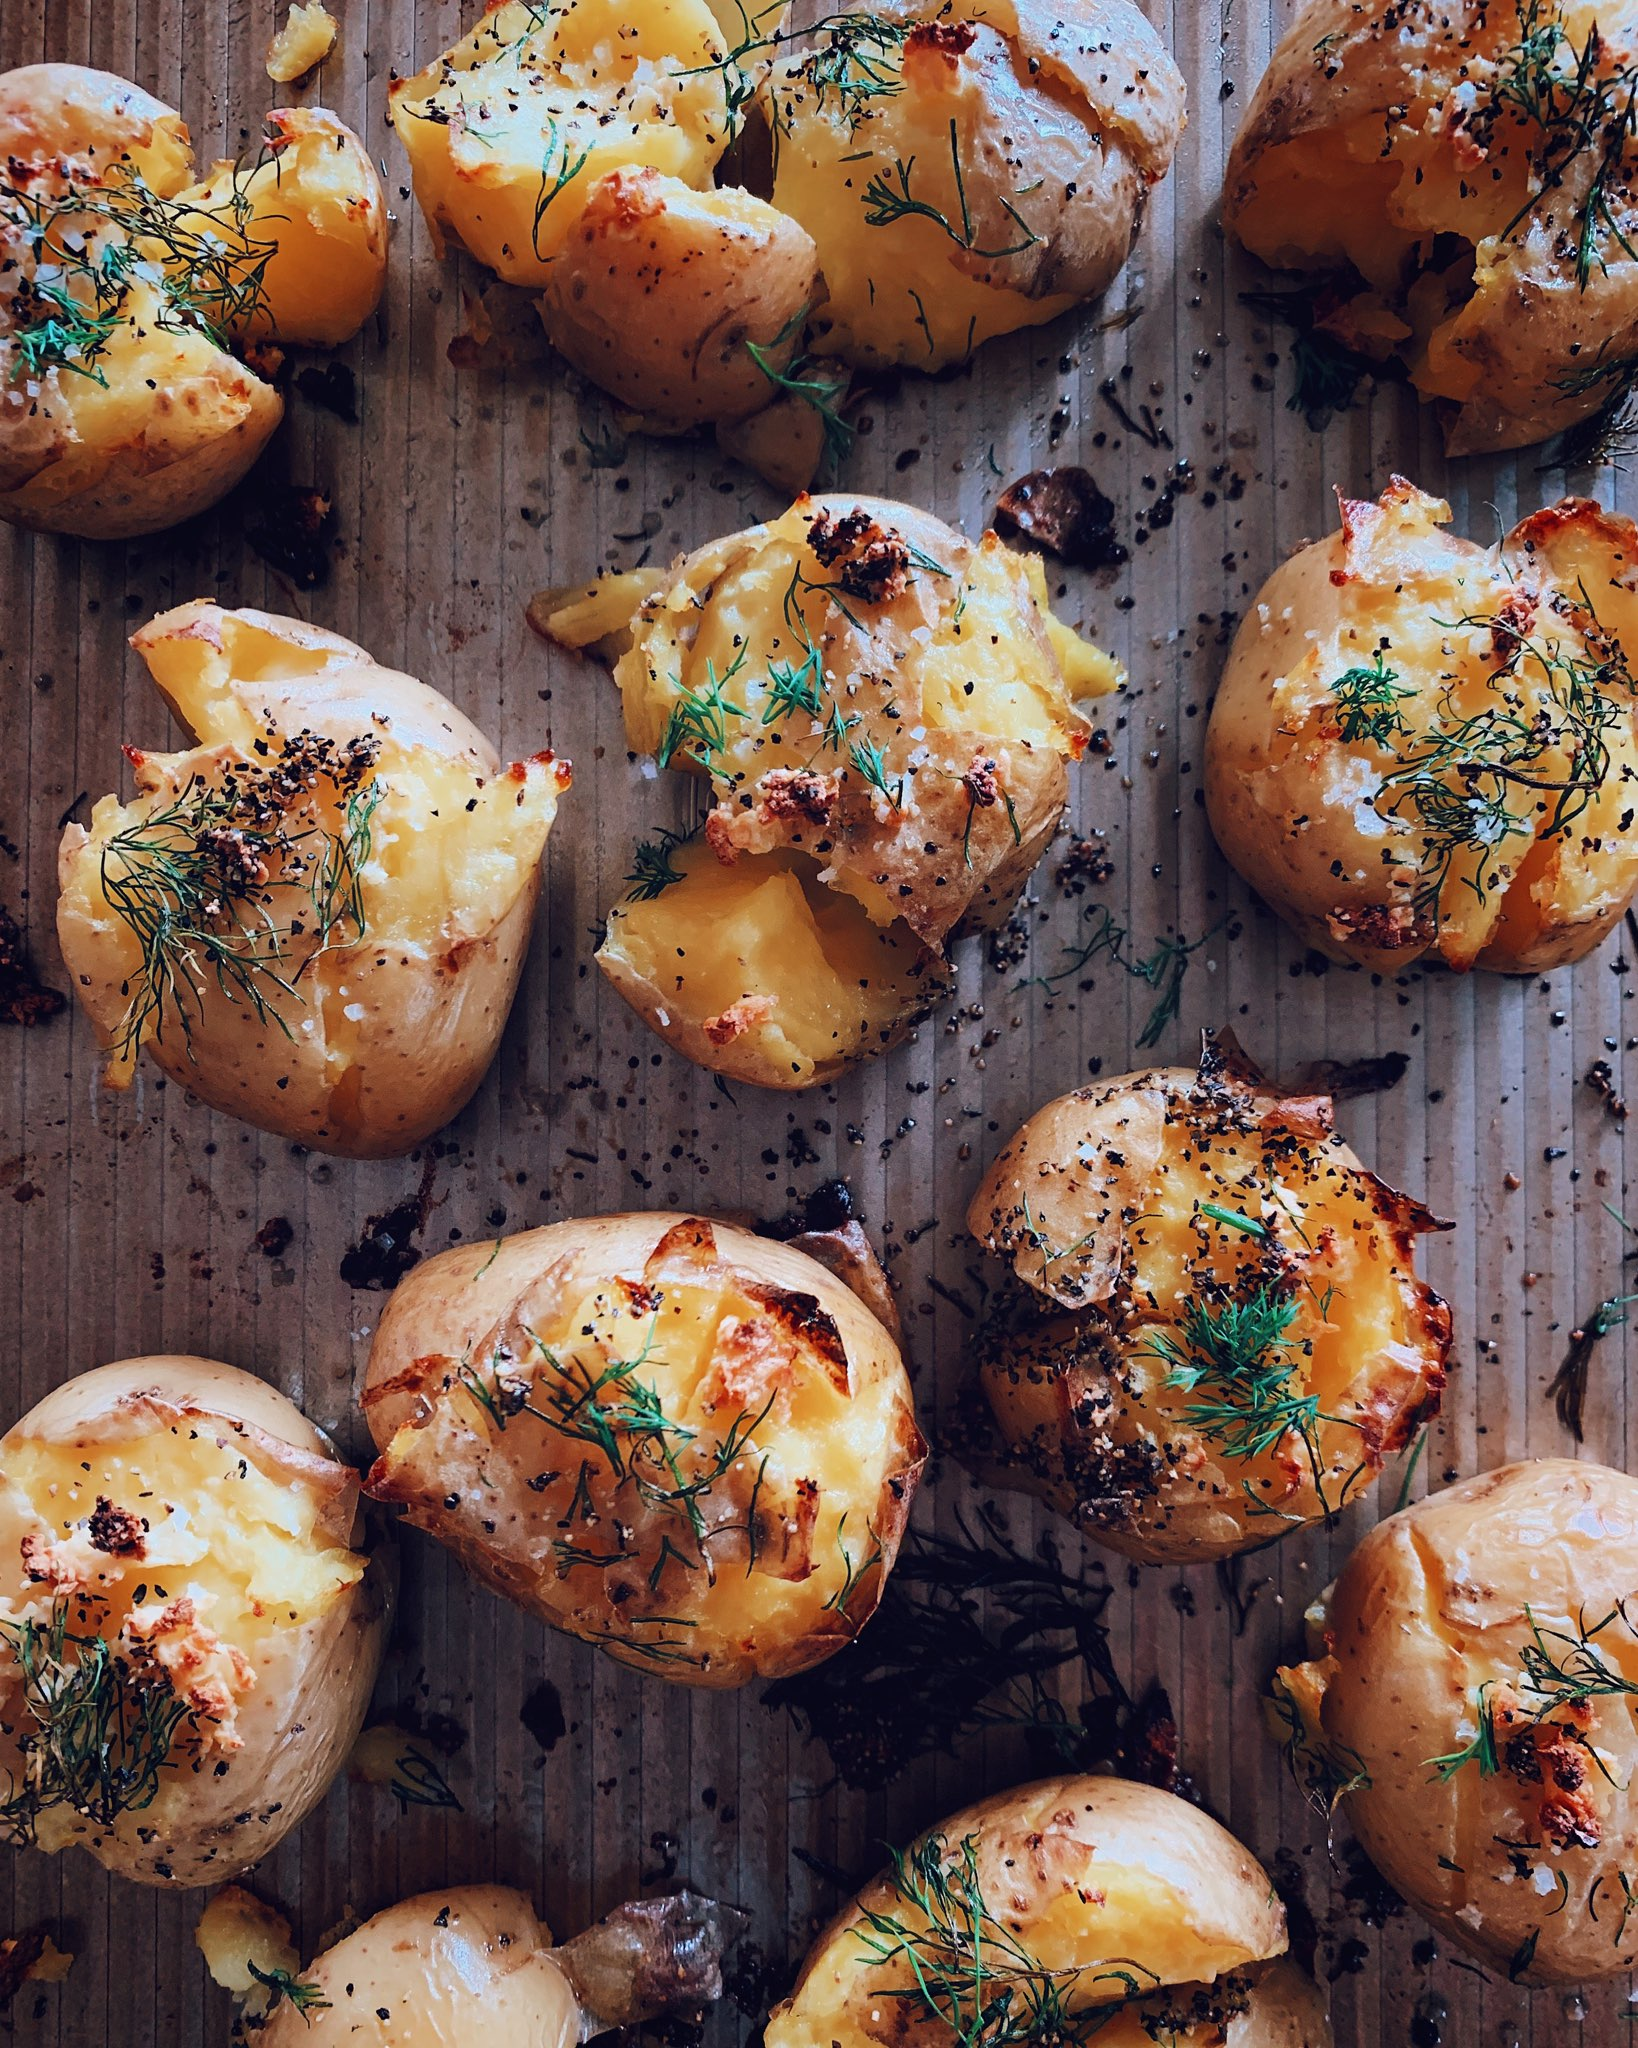 GARLICKY SMASHED POTATOES - INGREDIENTS1 1/2 pounds yellow potatoes4 cloves garlic, pressed2 tb olive oil, or you can use a spray2 tb chopped fresh dillsalt and pepper to taste